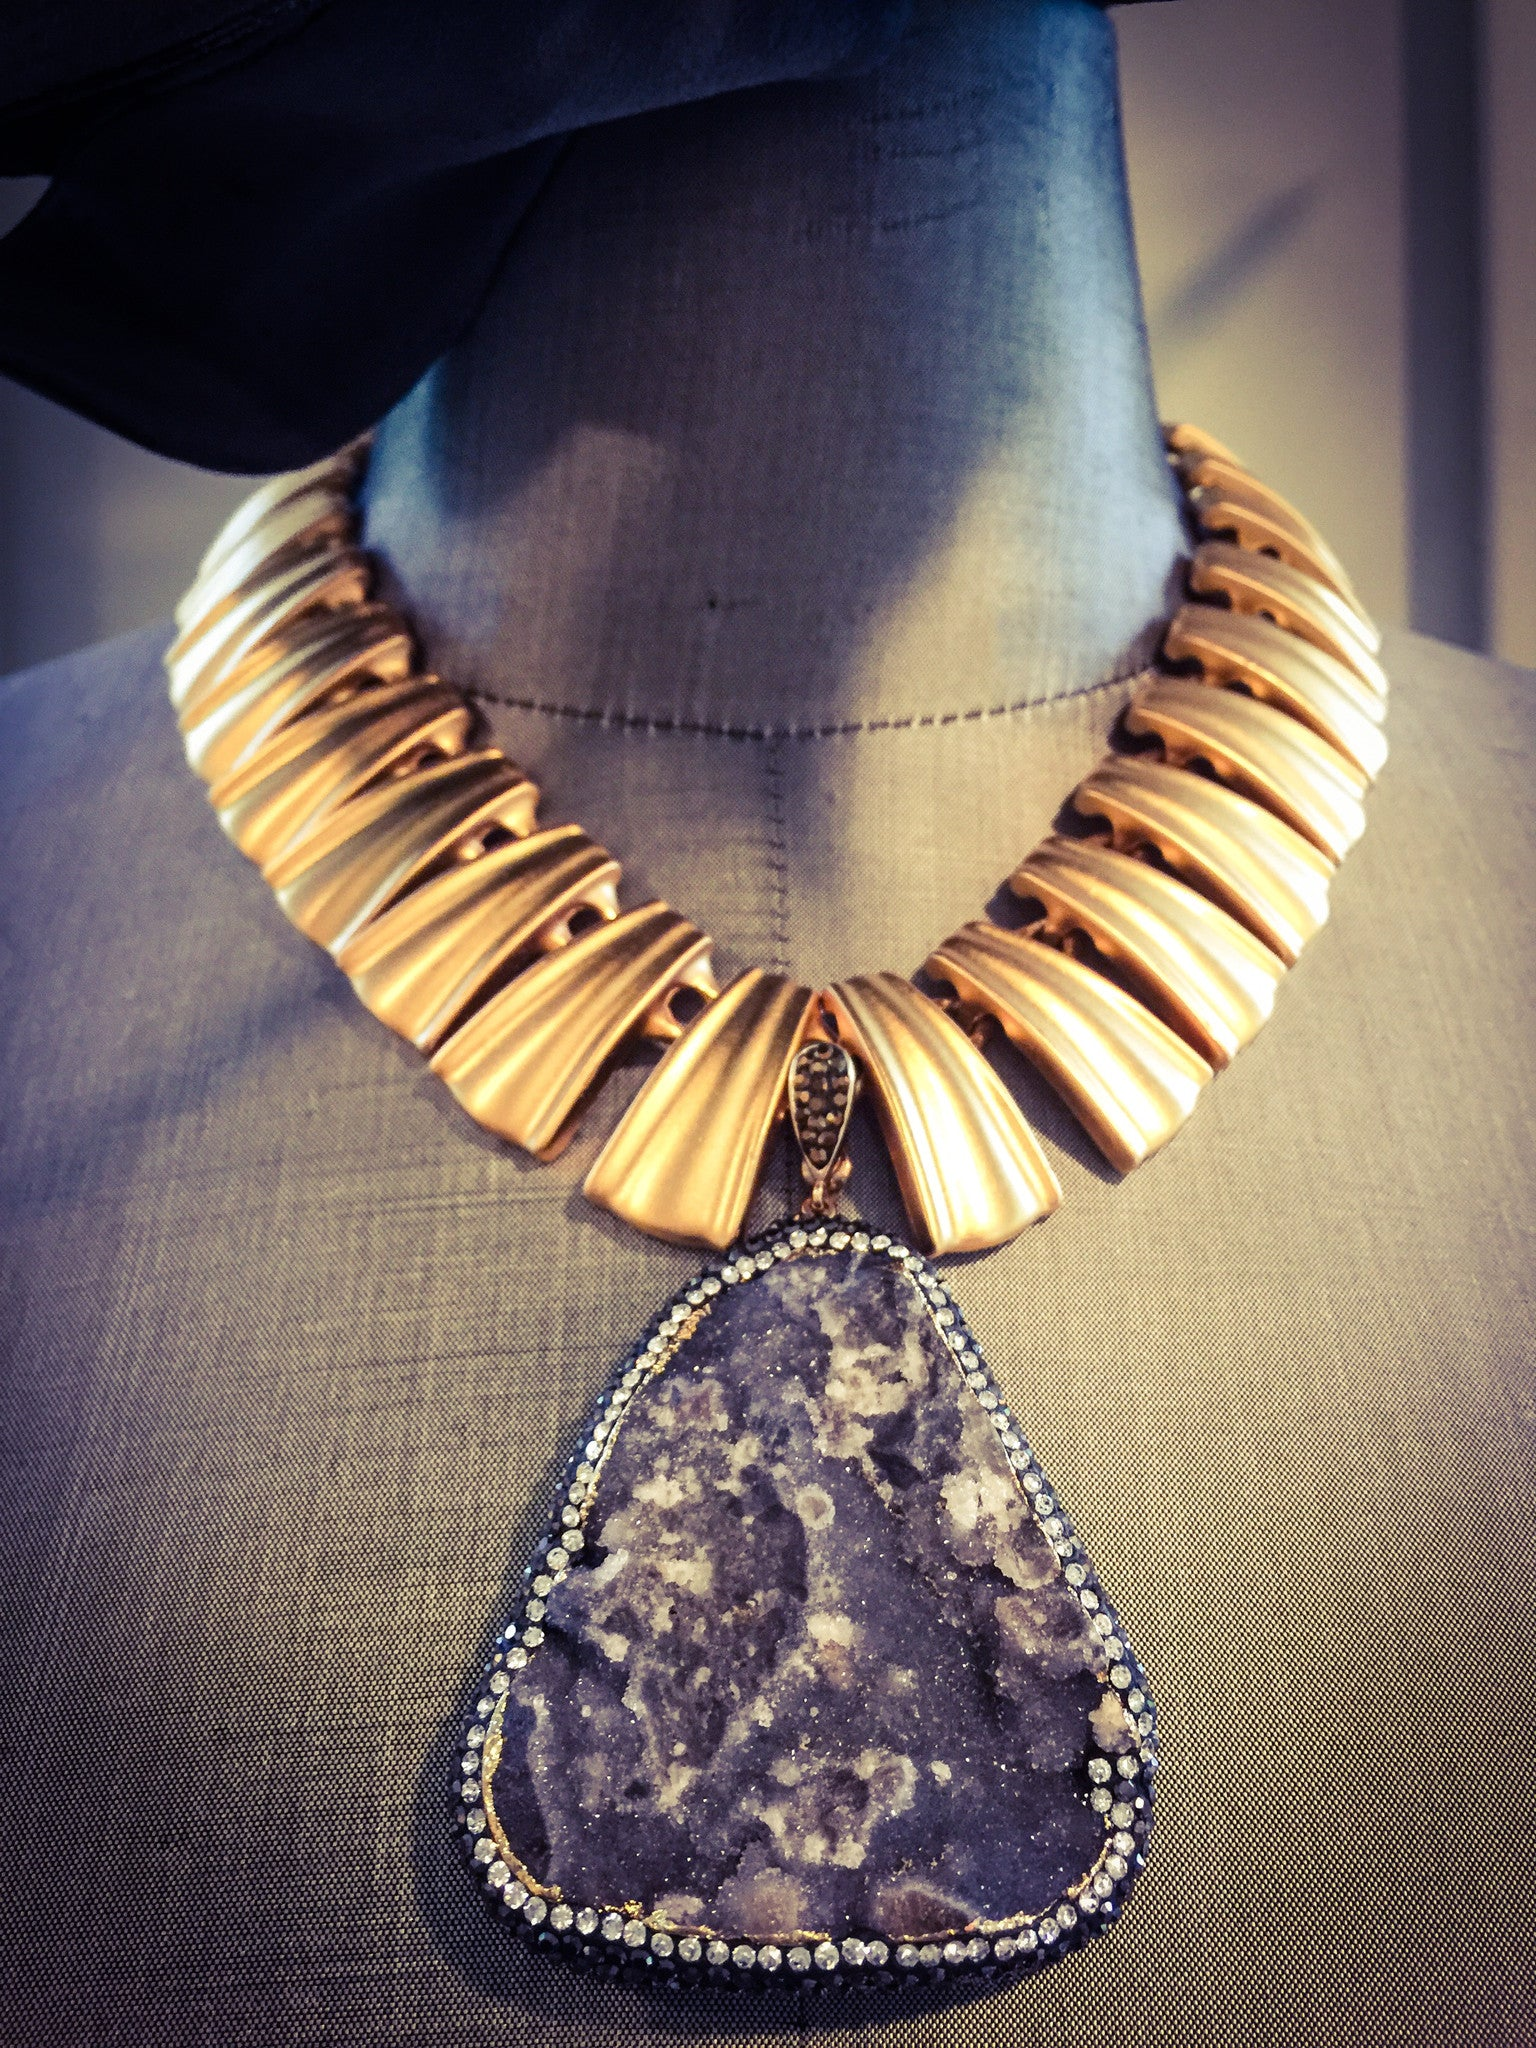 Fluted Fan with Druzy